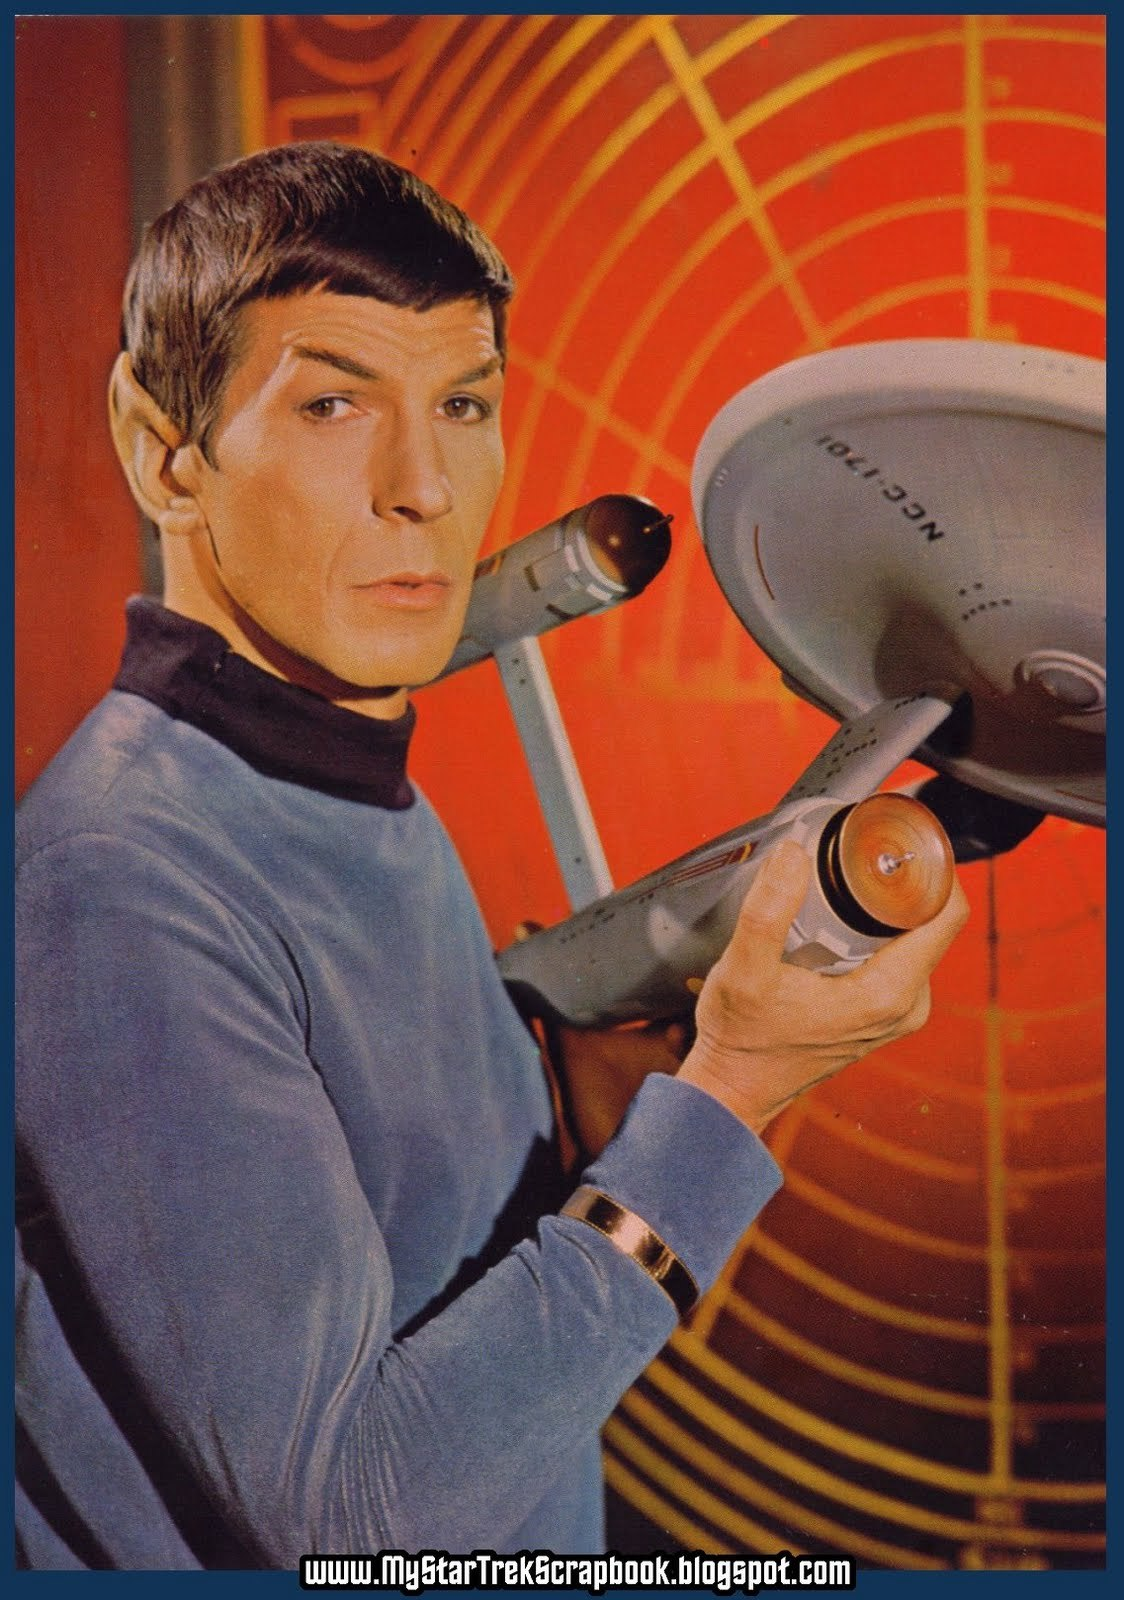 Spock - Star Trek Original series promotional poster